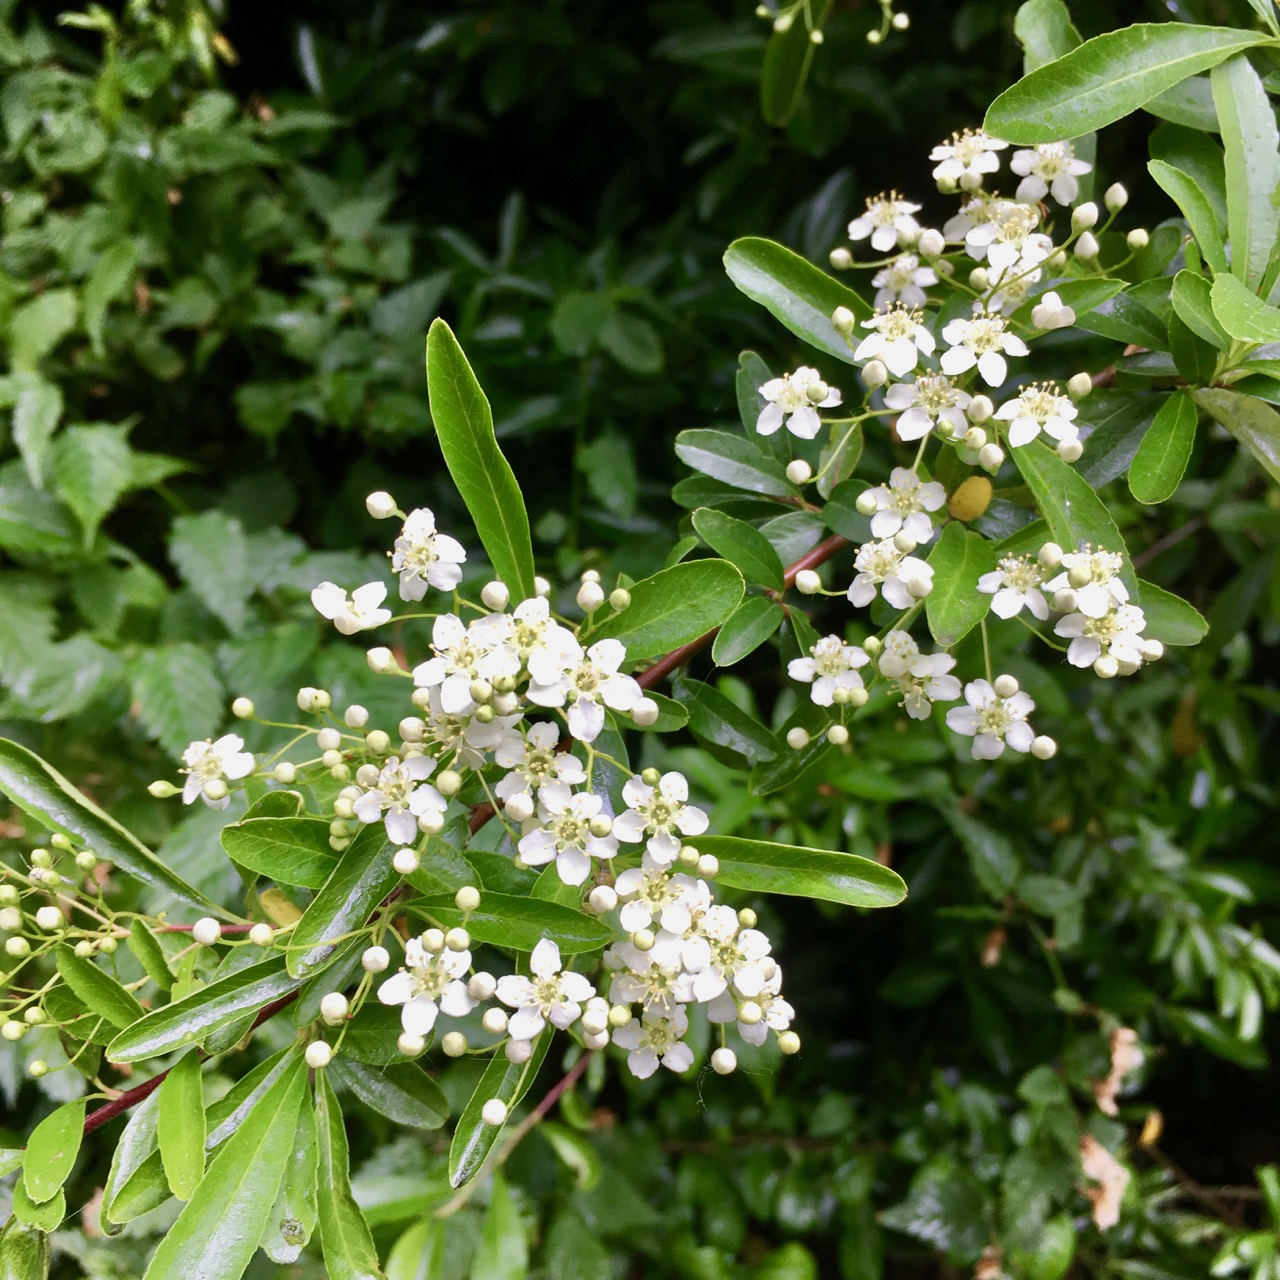 miniature flowers on the pyracantha